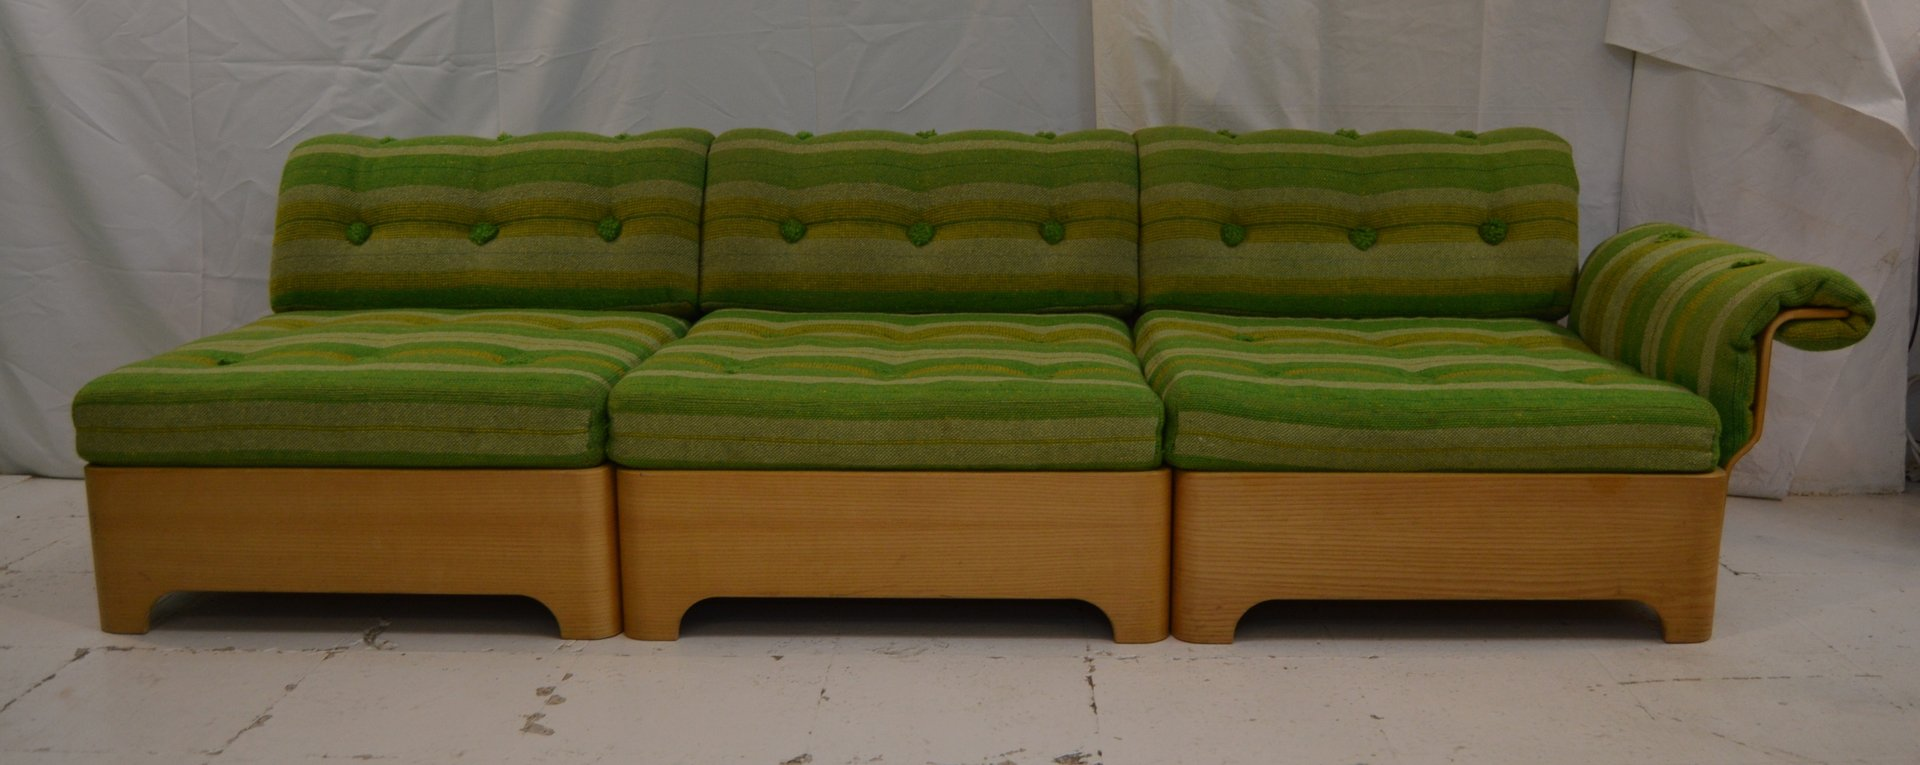 Vintage swedish 3 seater sofa with side table footrest for Sofa 7 seater